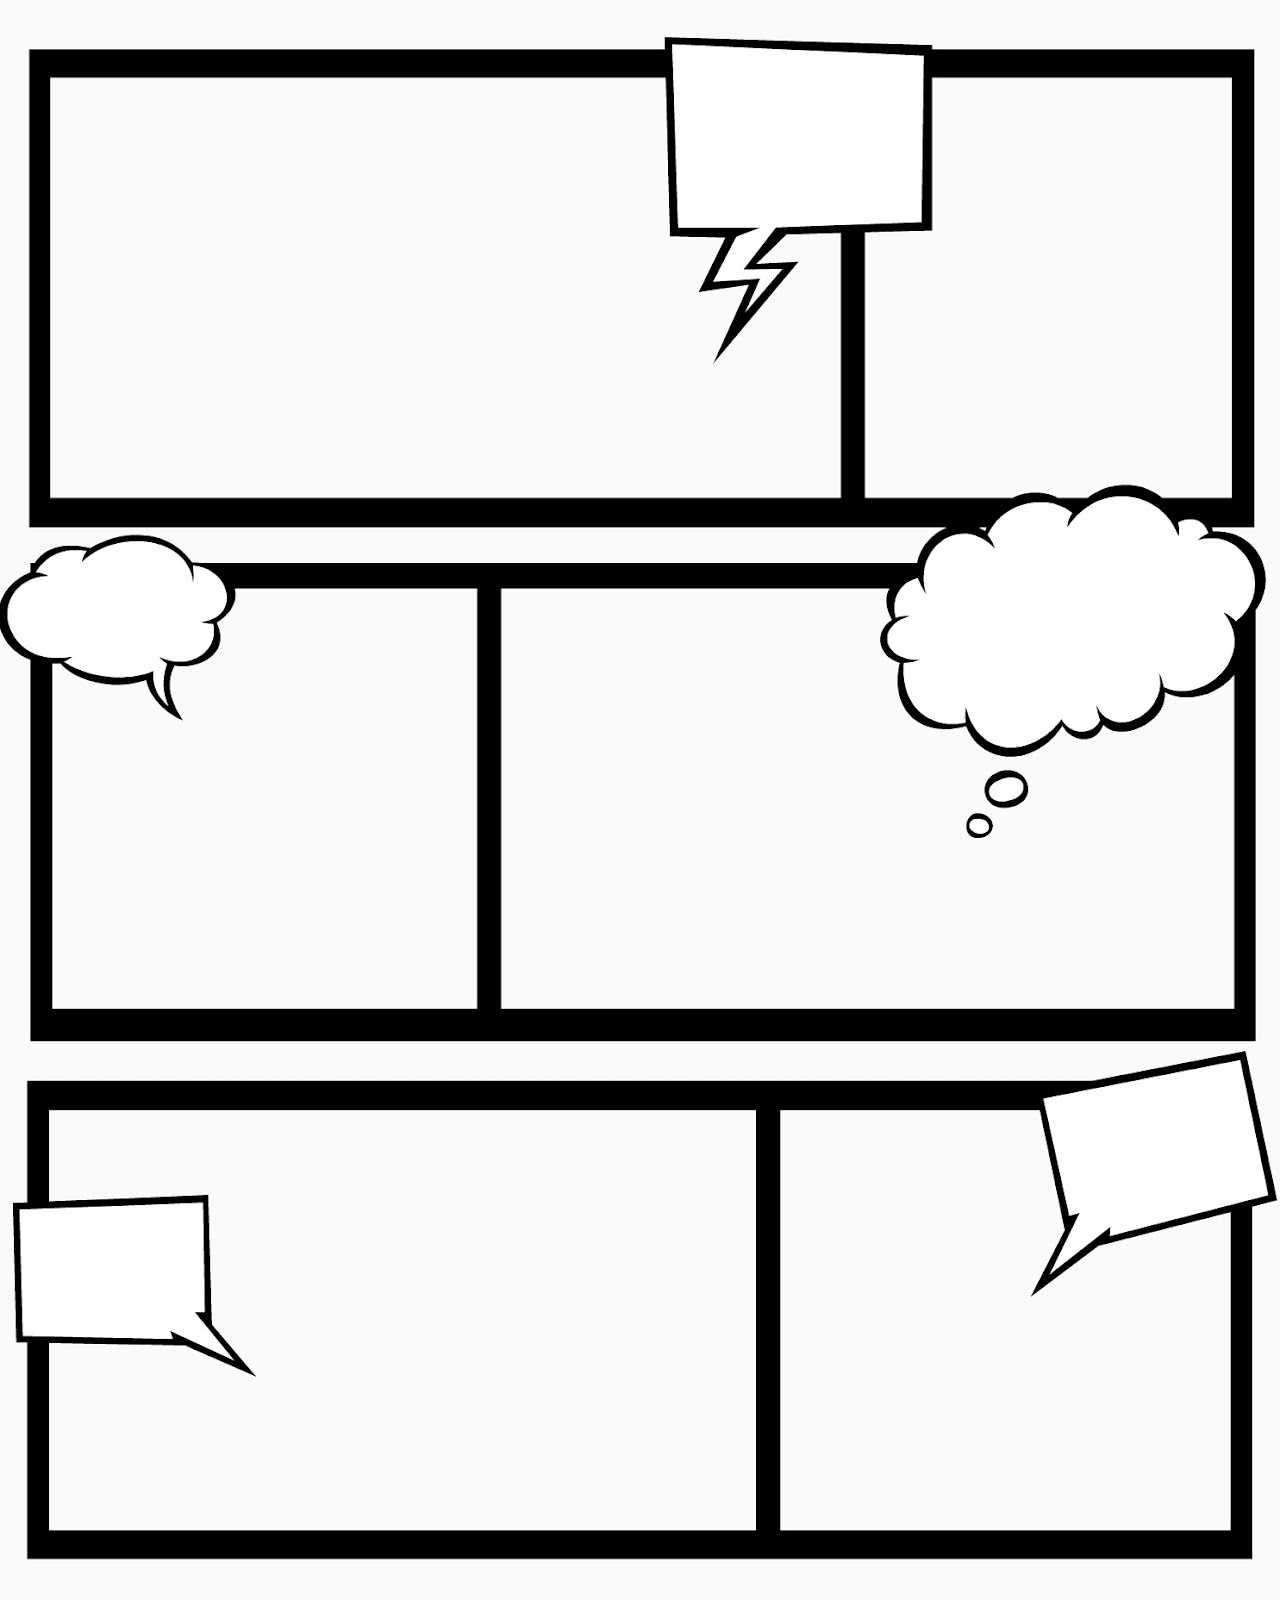 Comic Strip Template for Kids Printable